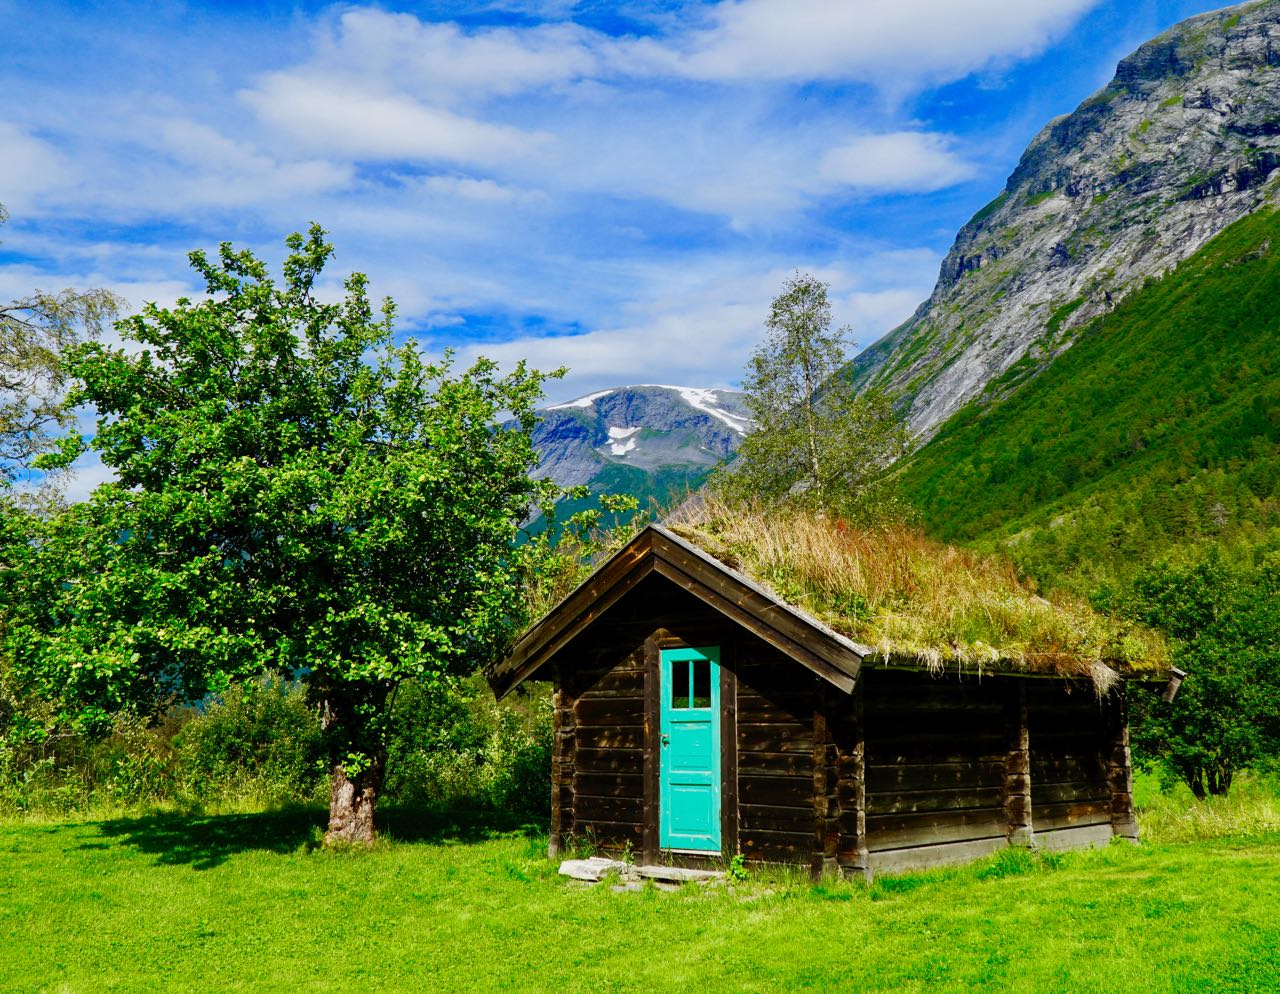 Road trip Norway Cabin Mountain complete itinerary